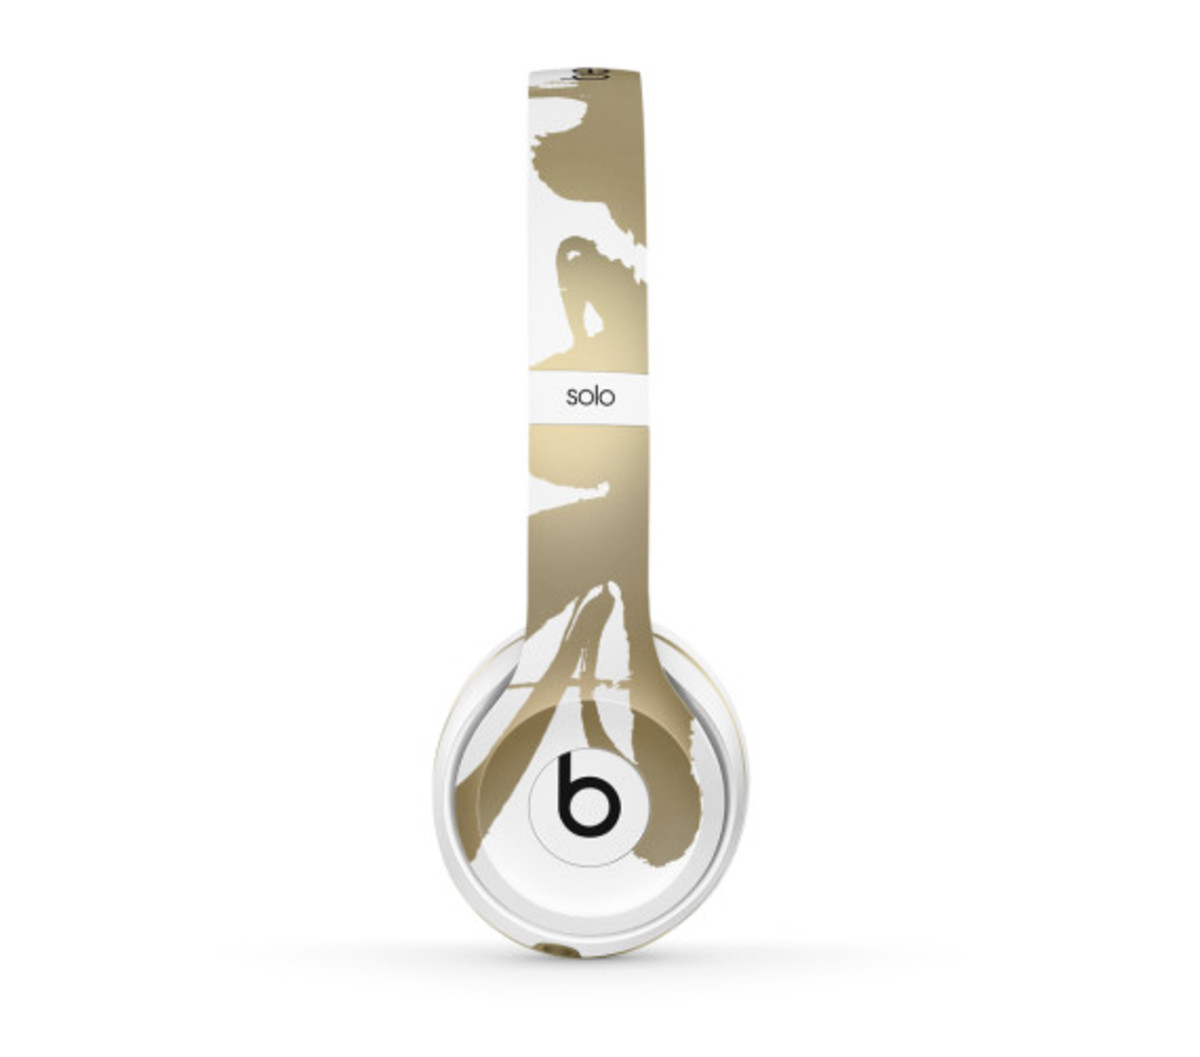 chen-man-beats-by-dre-chinese-new-year-solo2-headphones-04